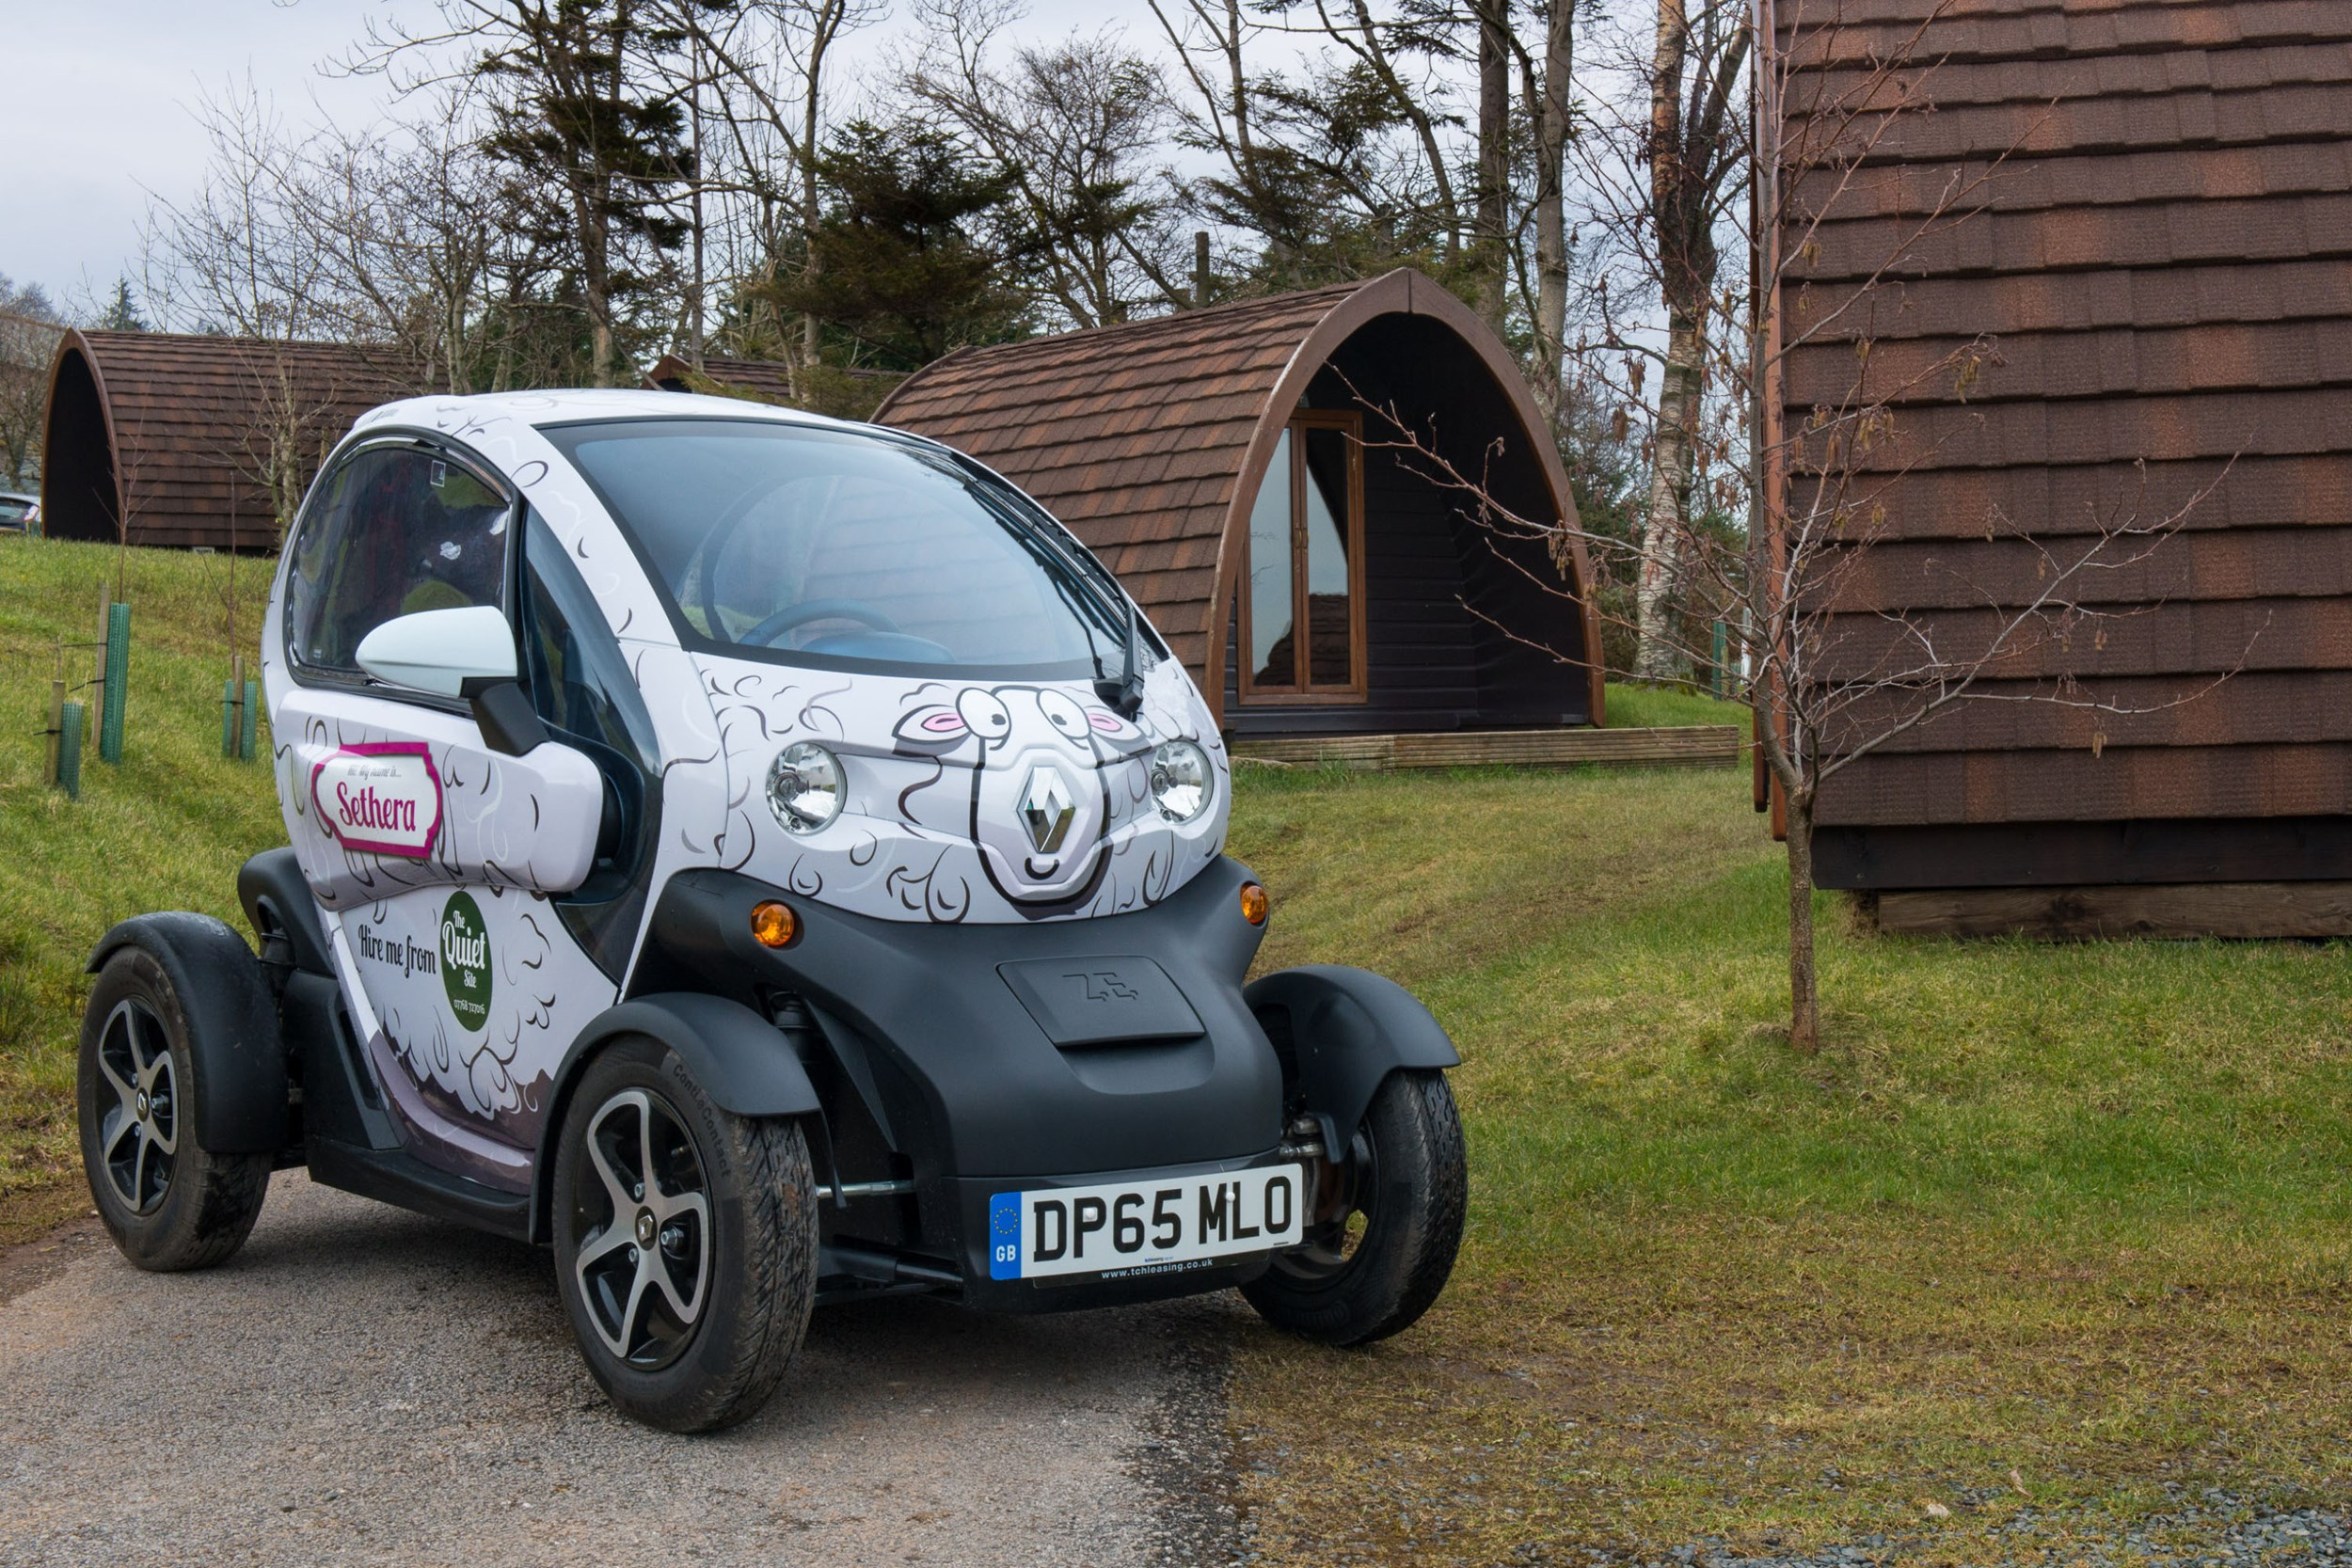 cumbria tourism chooses renault twizy electric vehicles manufacturer news. Black Bedroom Furniture Sets. Home Design Ideas